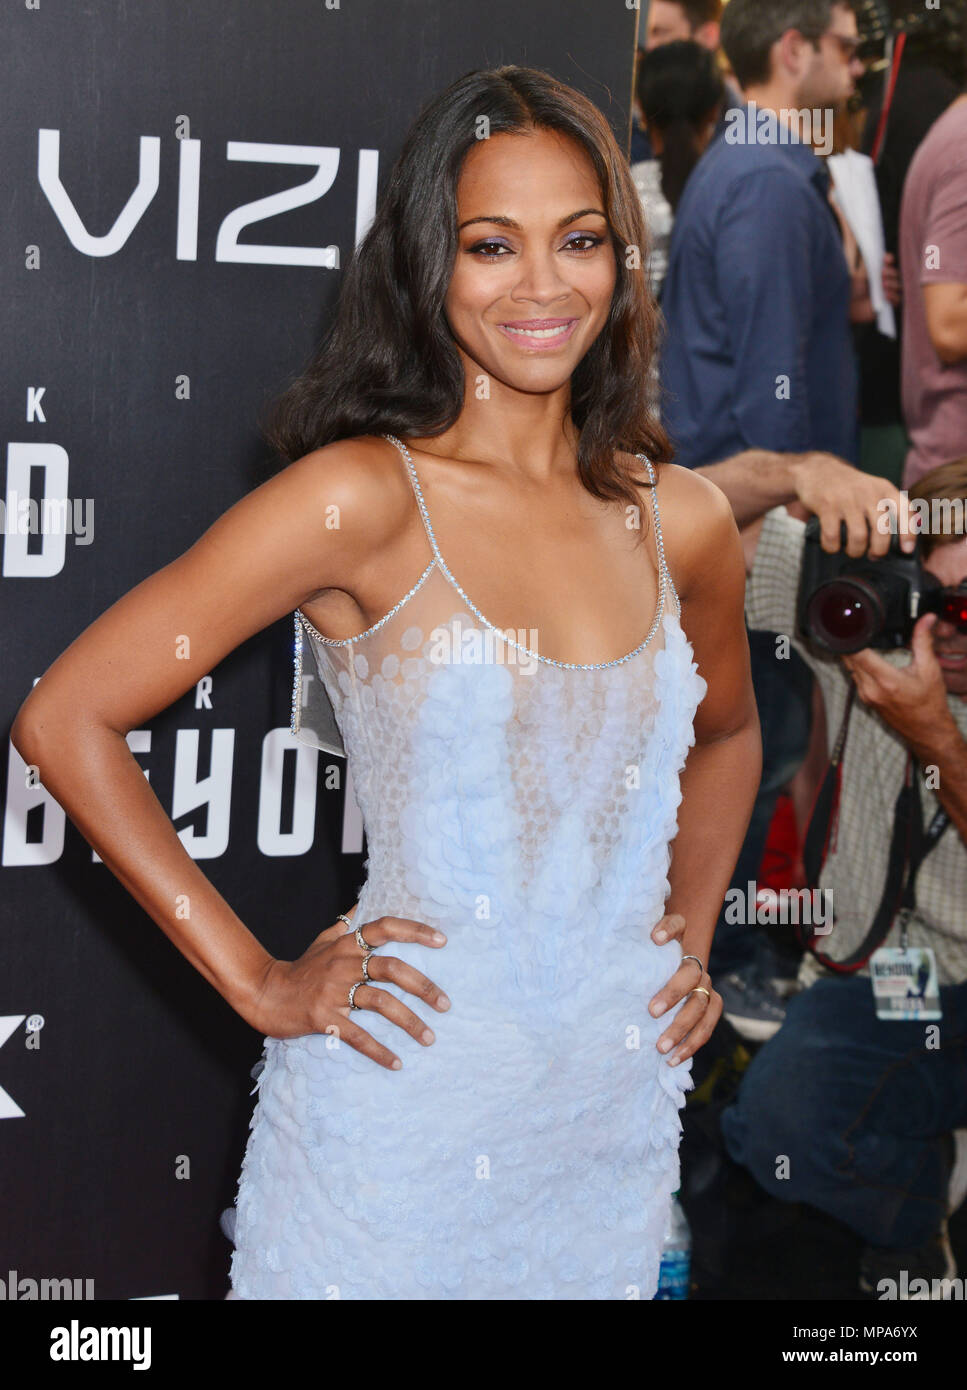 Zoe Saldana 057 Arriving At The Star Trek Beyond Premiere At The Embarcadero In San Diego Comicon Convention July 20 2016 A Zoe Saldana 057 Red Carpet Event Vertical Usa